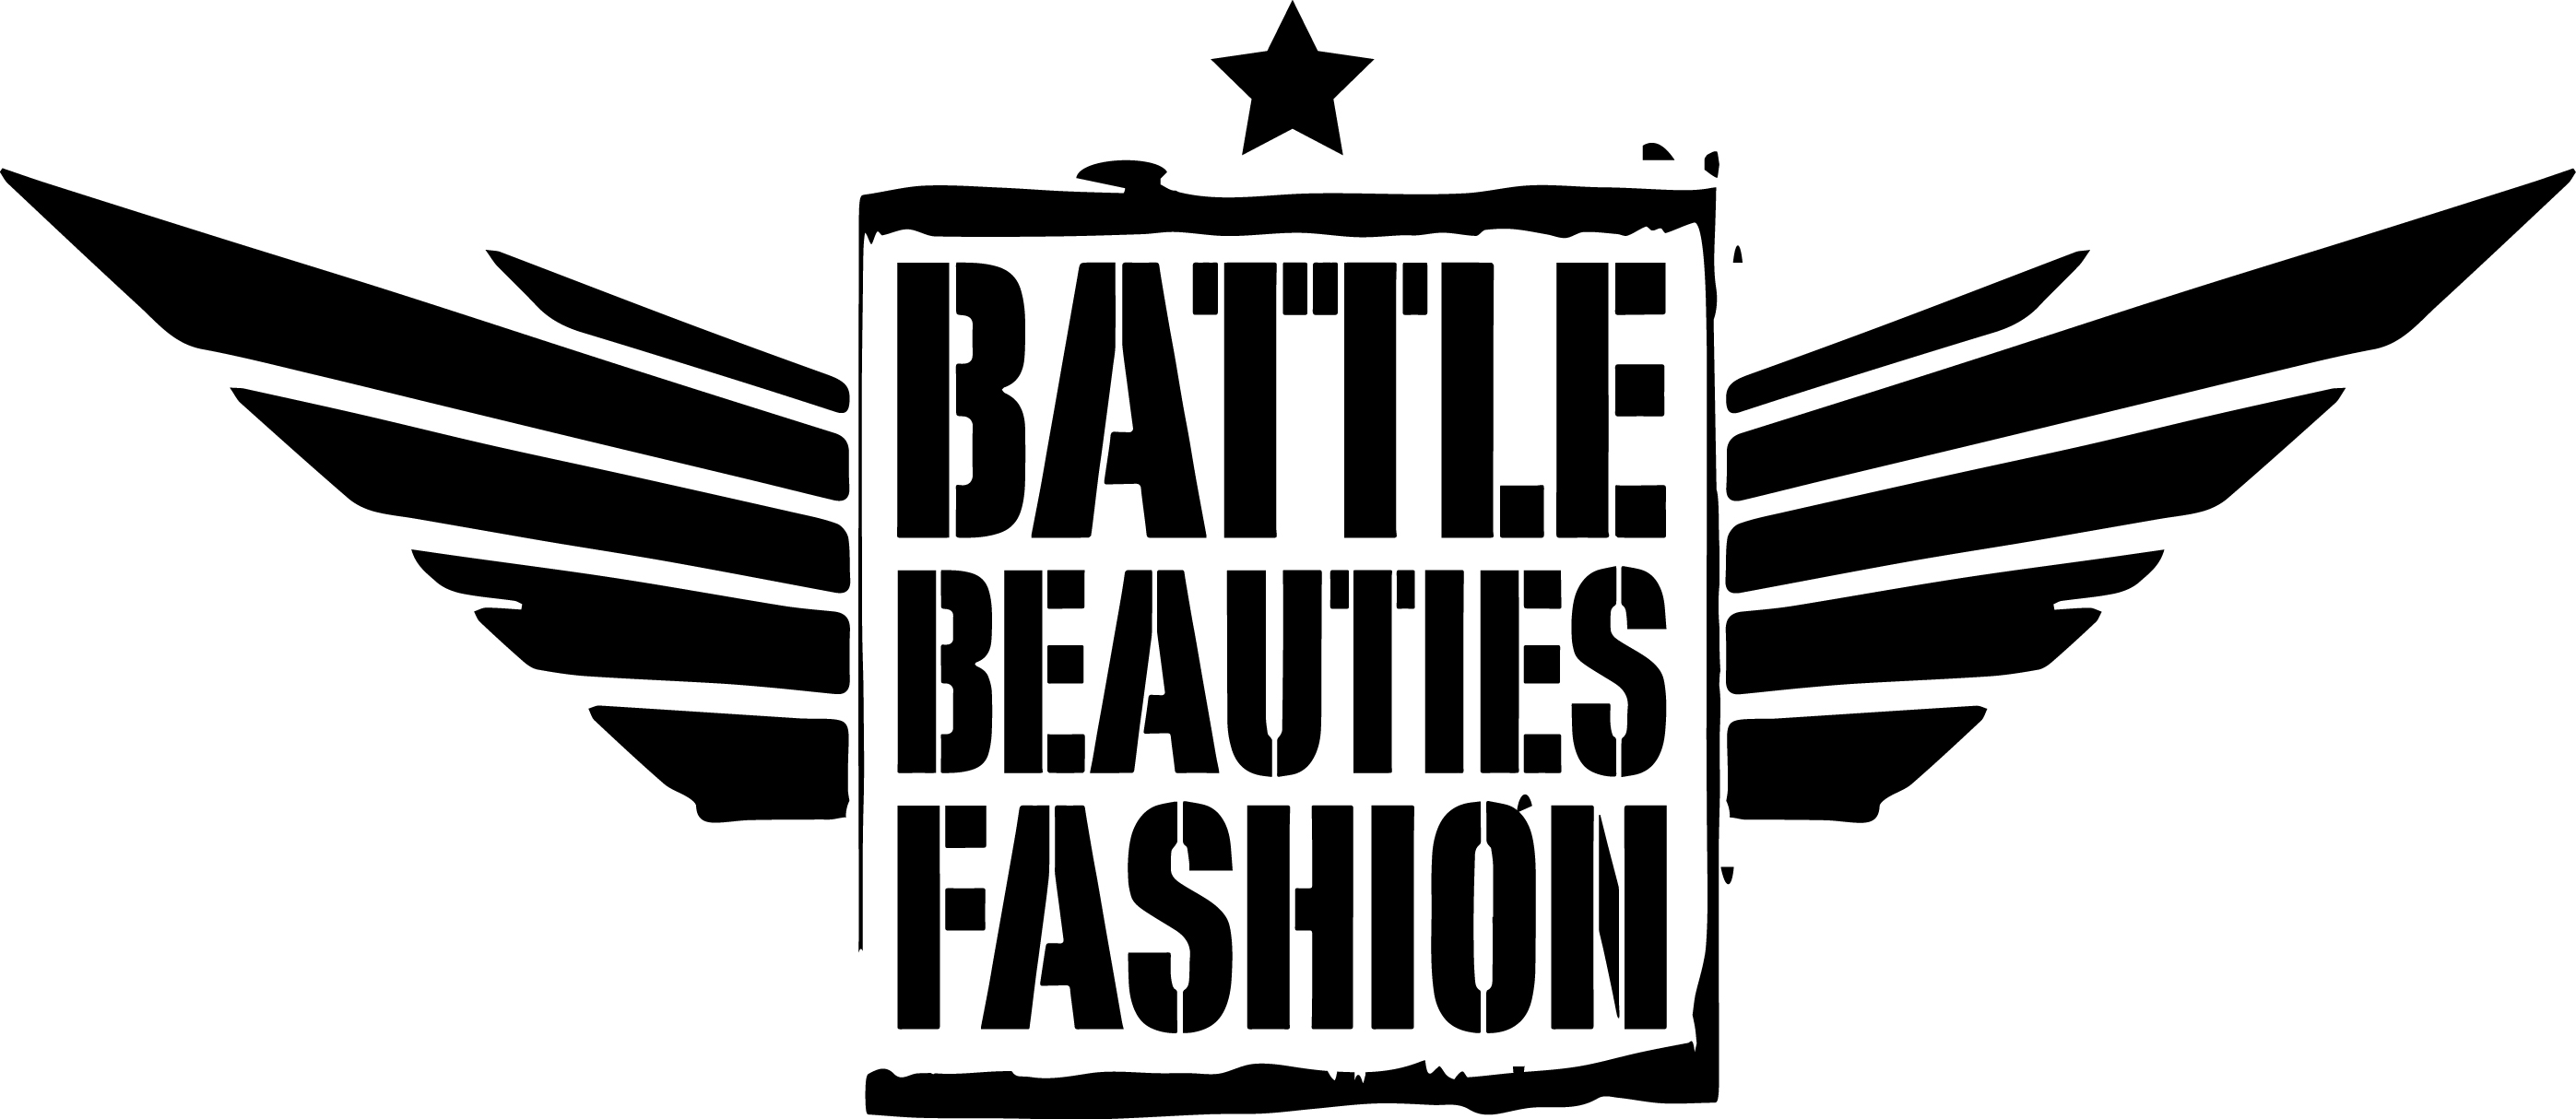 Battle Beauties Fashion